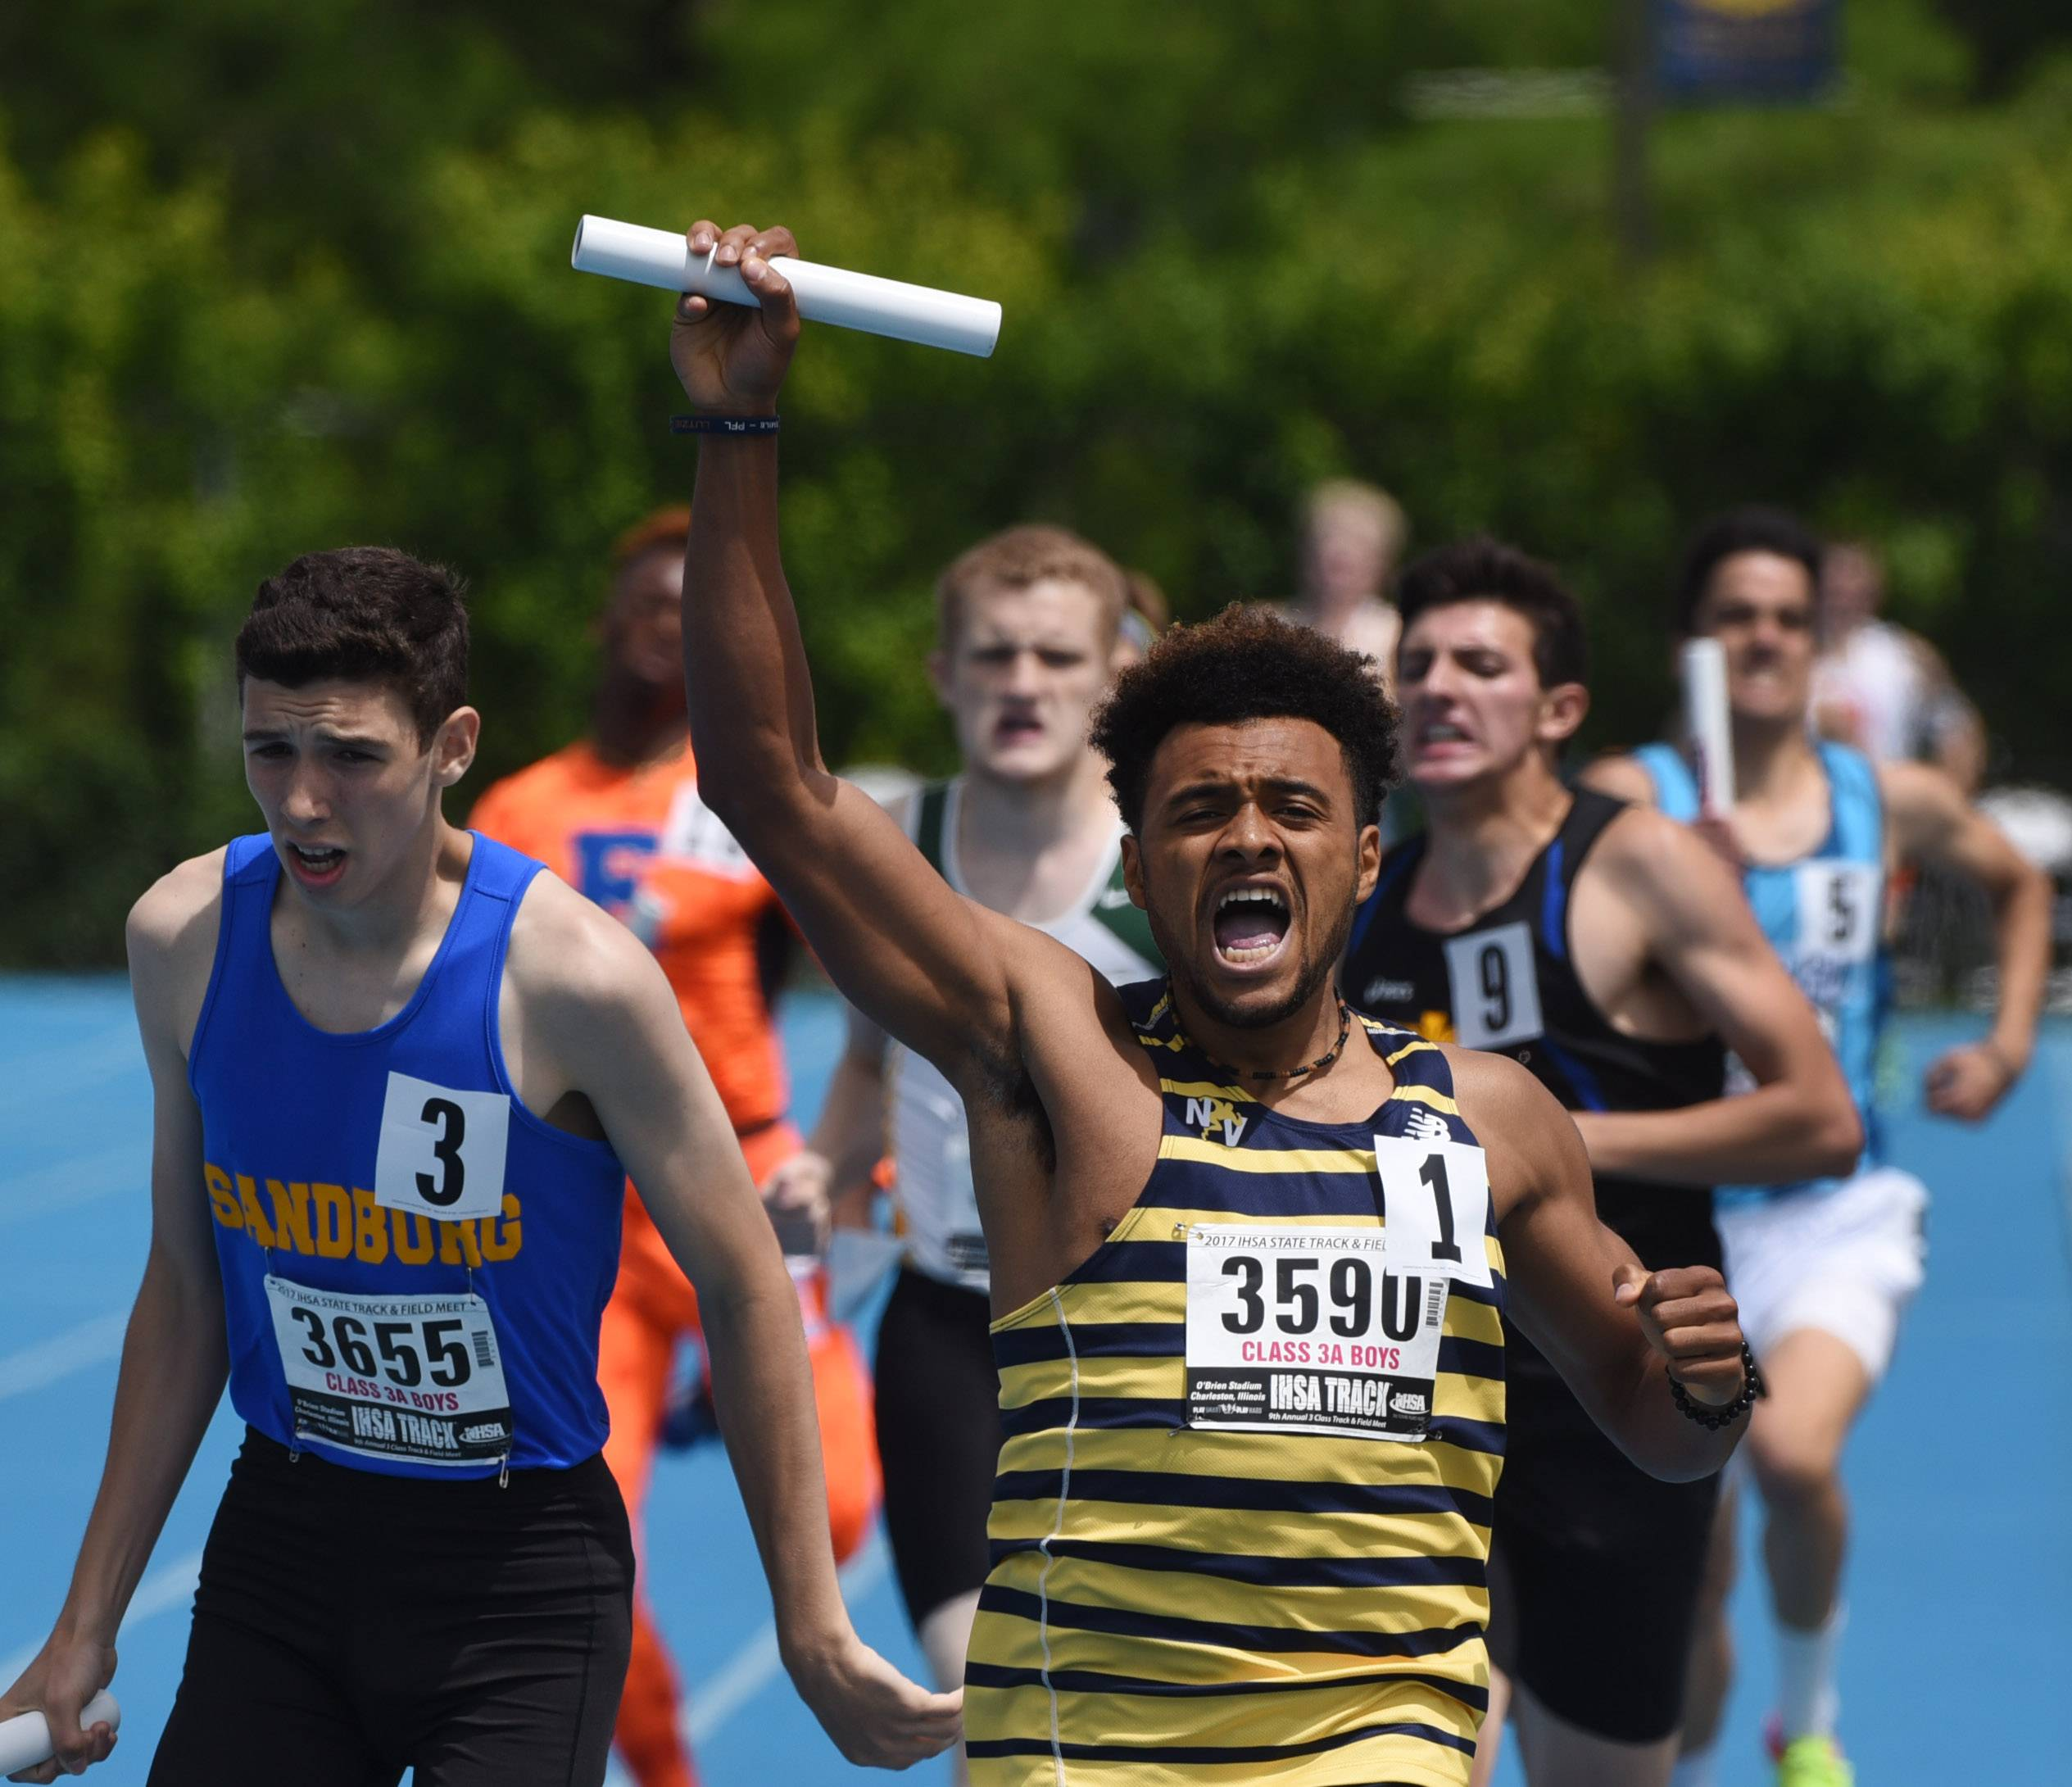 Neuqua Valley's Isaiah Robinson holds the baton high as he crosses the finish line with his team's win in the class 3A 3,200 meter relay during the boys state track and field finals at Eastern Illinois University in Charleston Saturday.